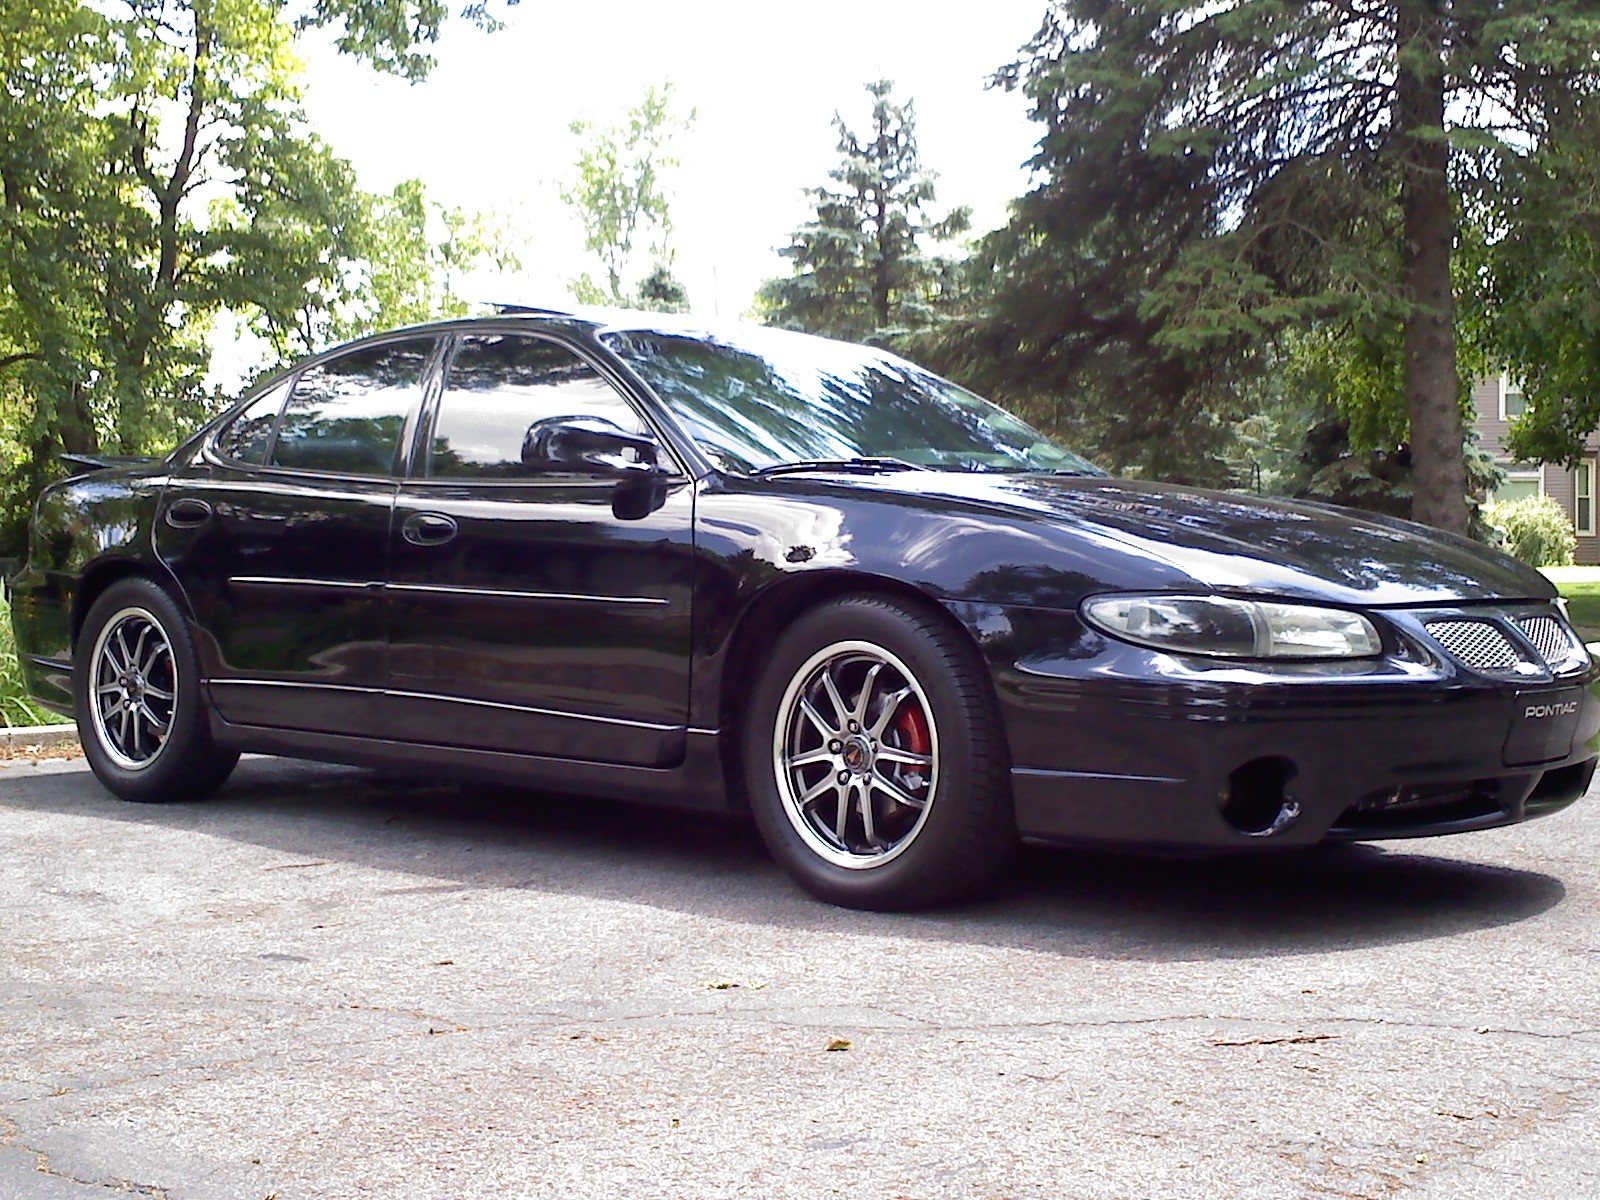 Picture of 1999 pontiac grand prix 4 dr gtp supercharged sedan exterior gallery_worthy